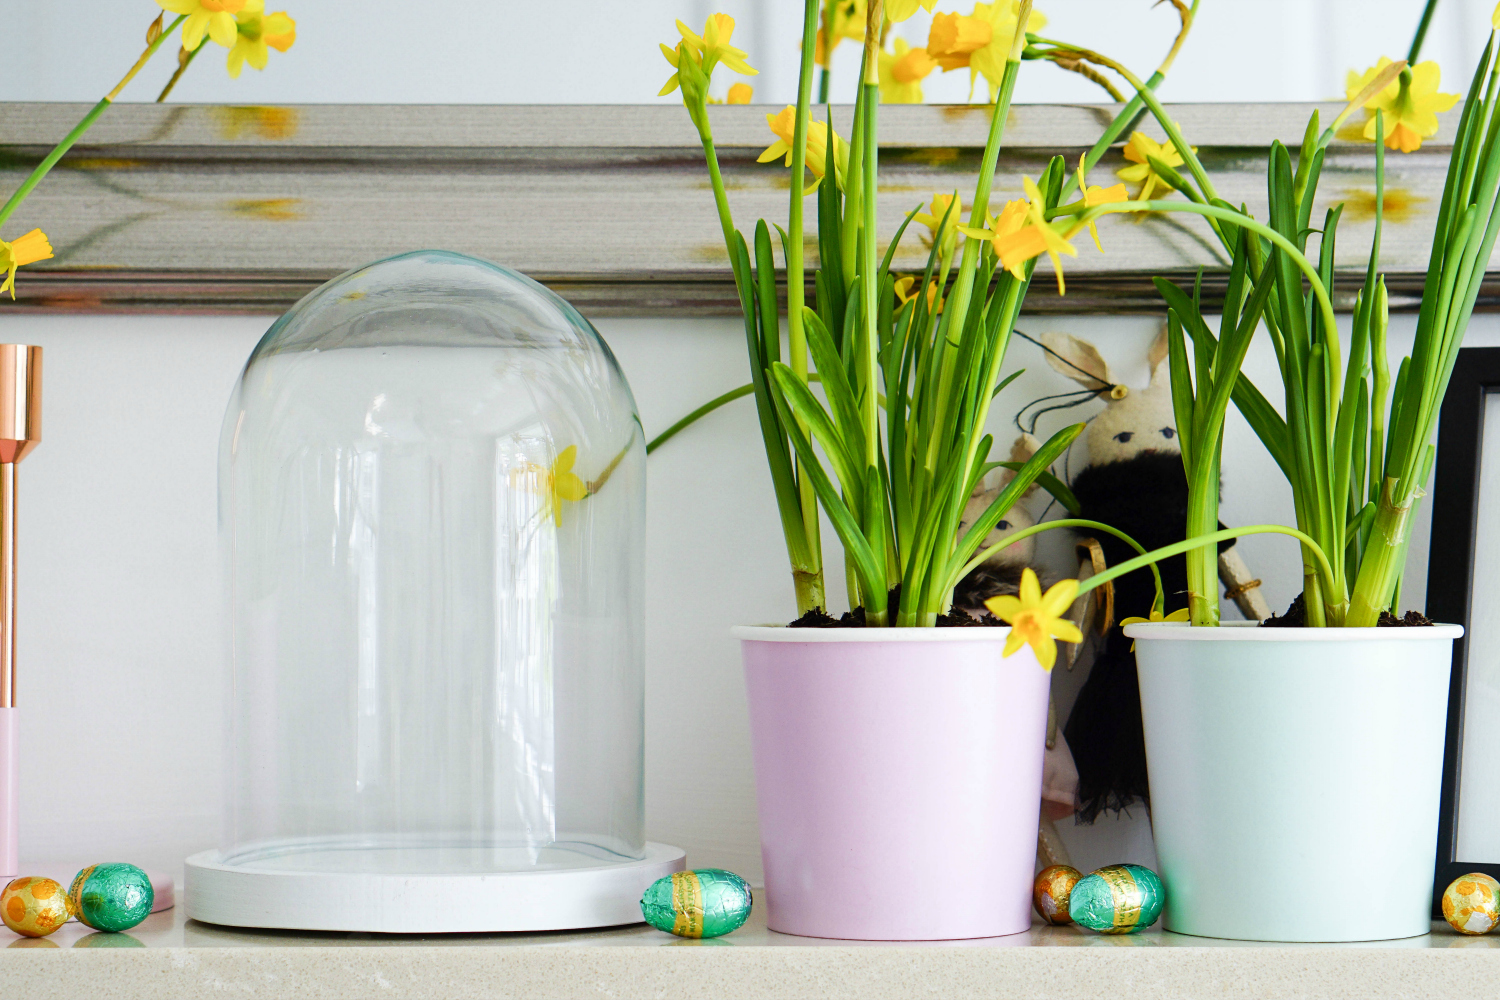 Five super cute Easter crafts and gifts from HEMA